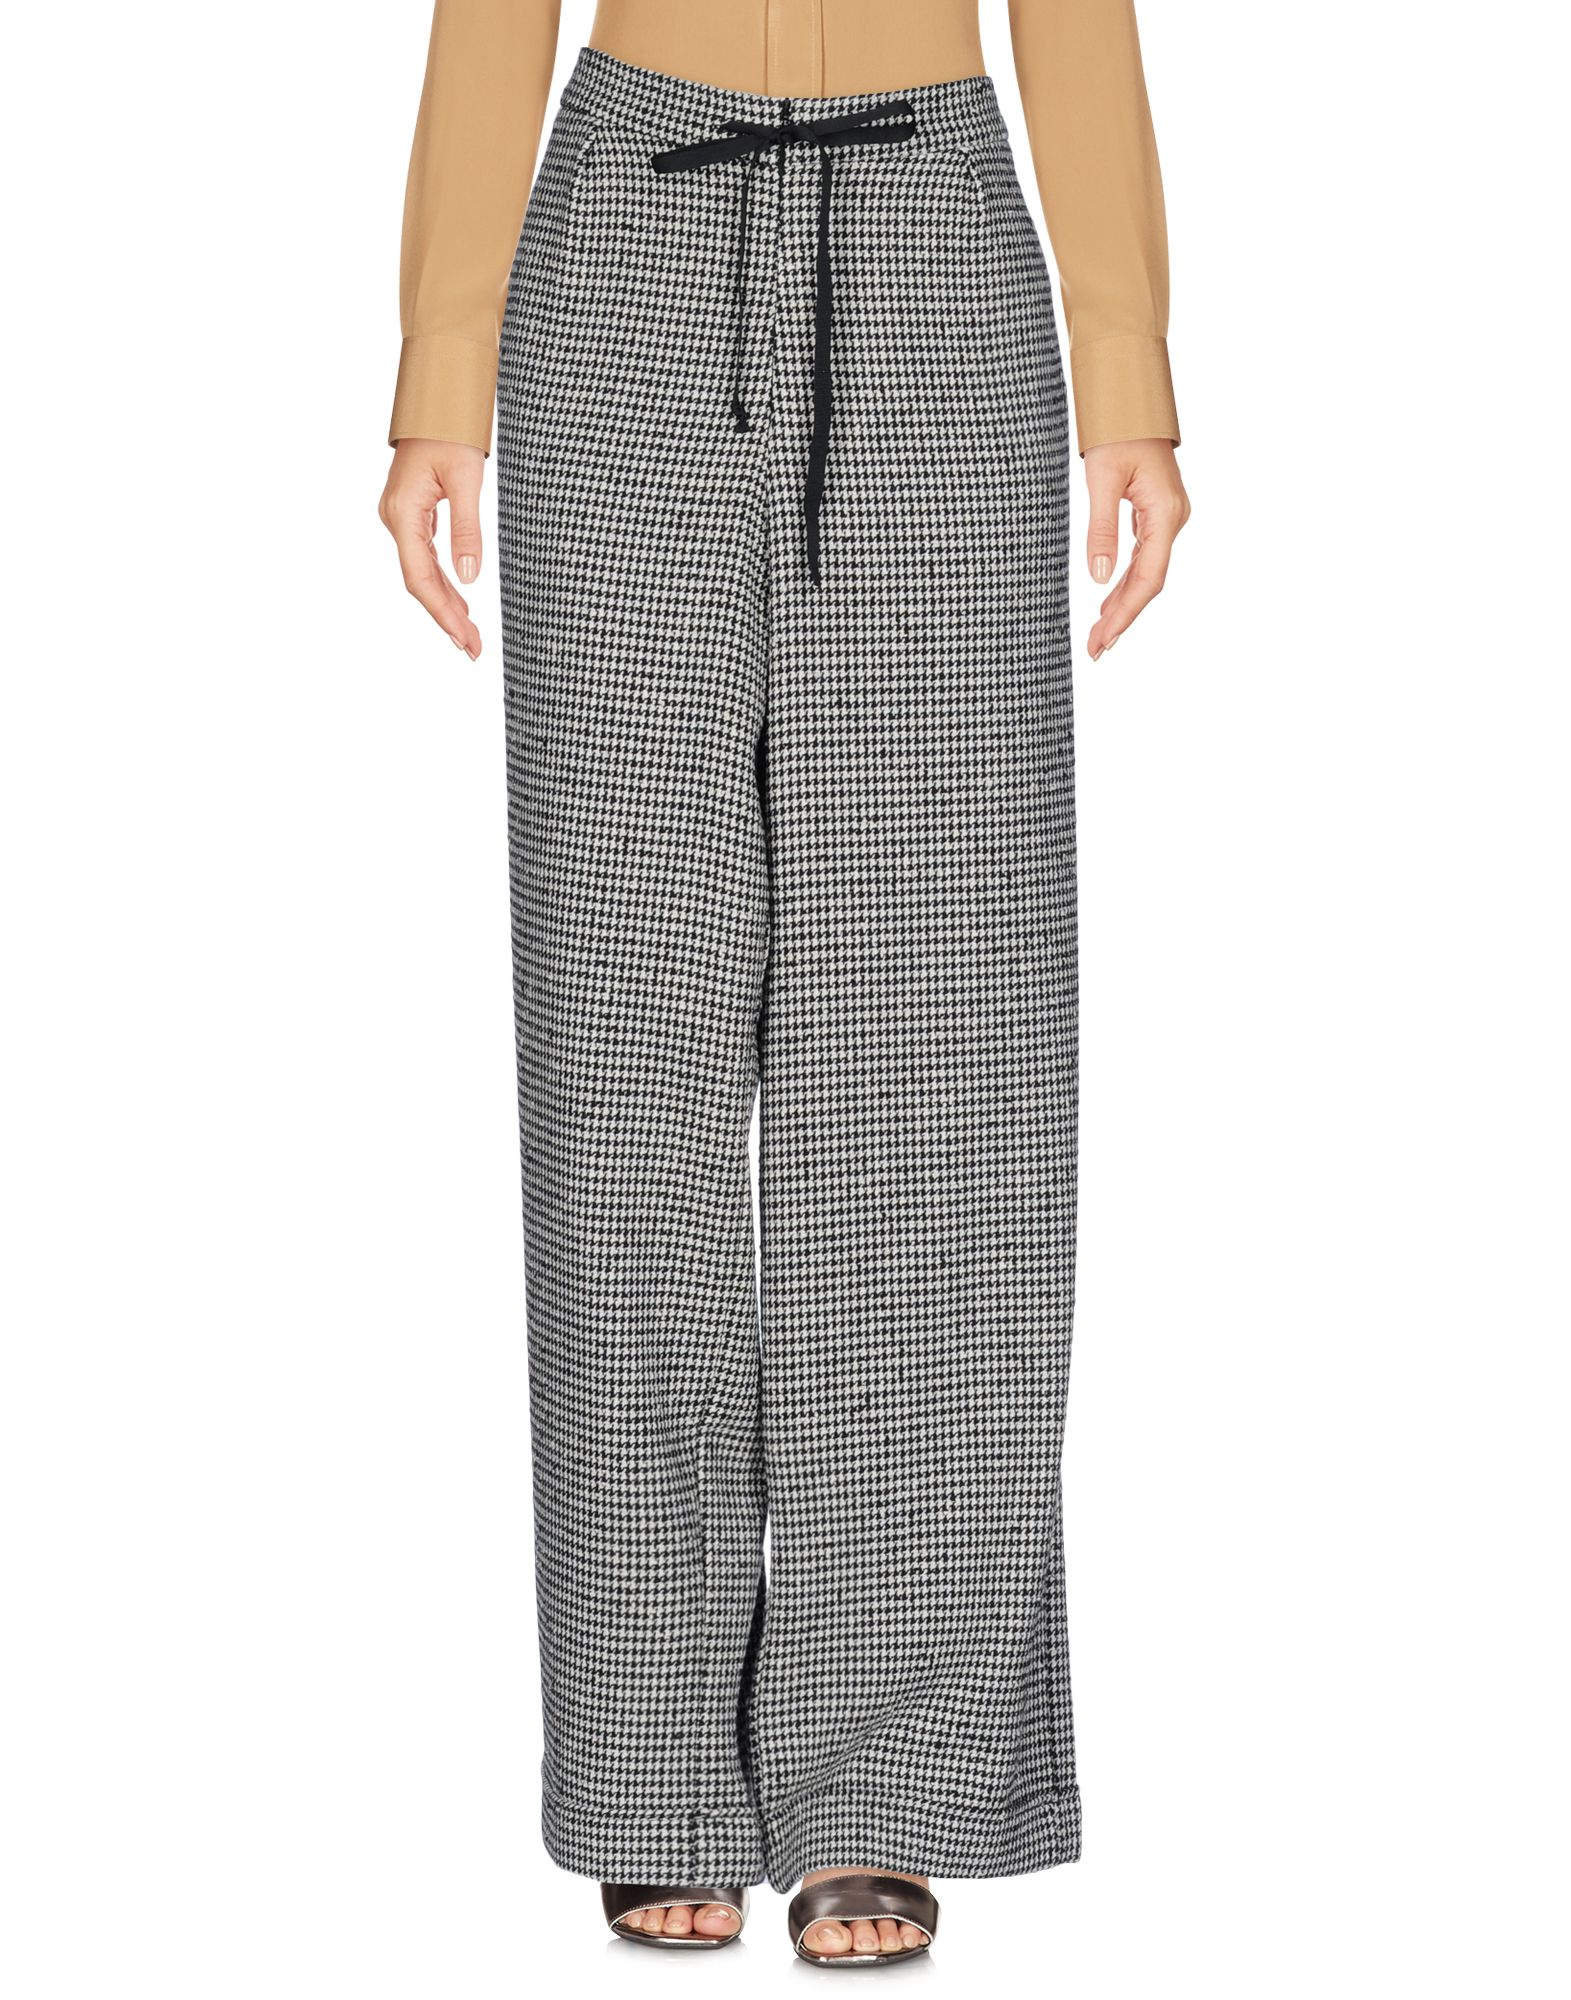 Ultra'chic Casual Pants